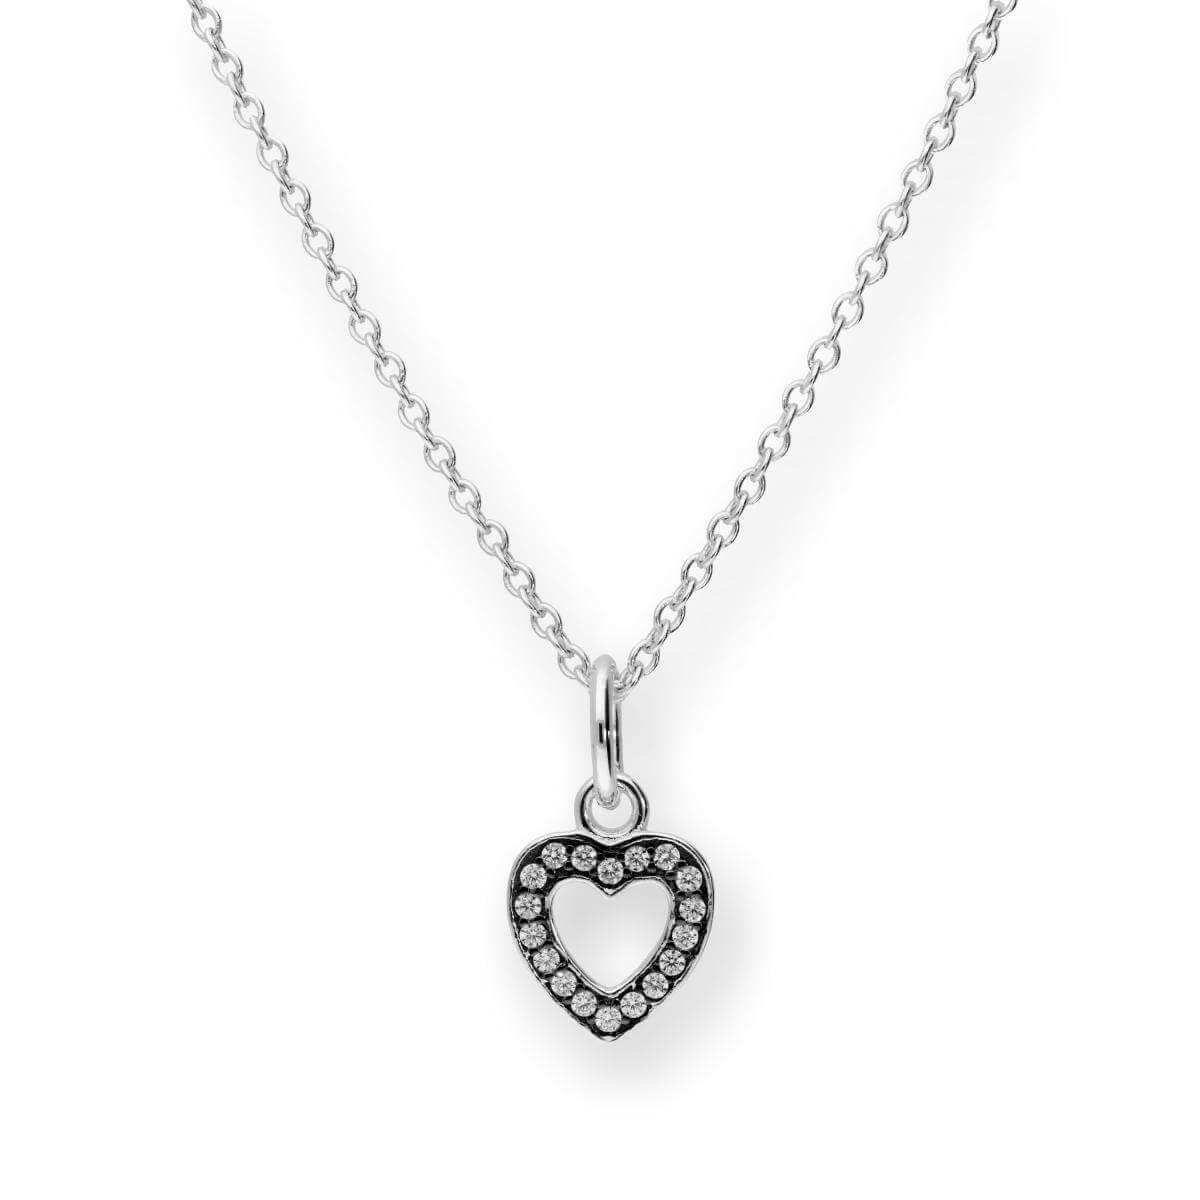 Sterling Silver & CZ Crystal Heart Pendant w Black Rhodium Necklace 16-22 Inches